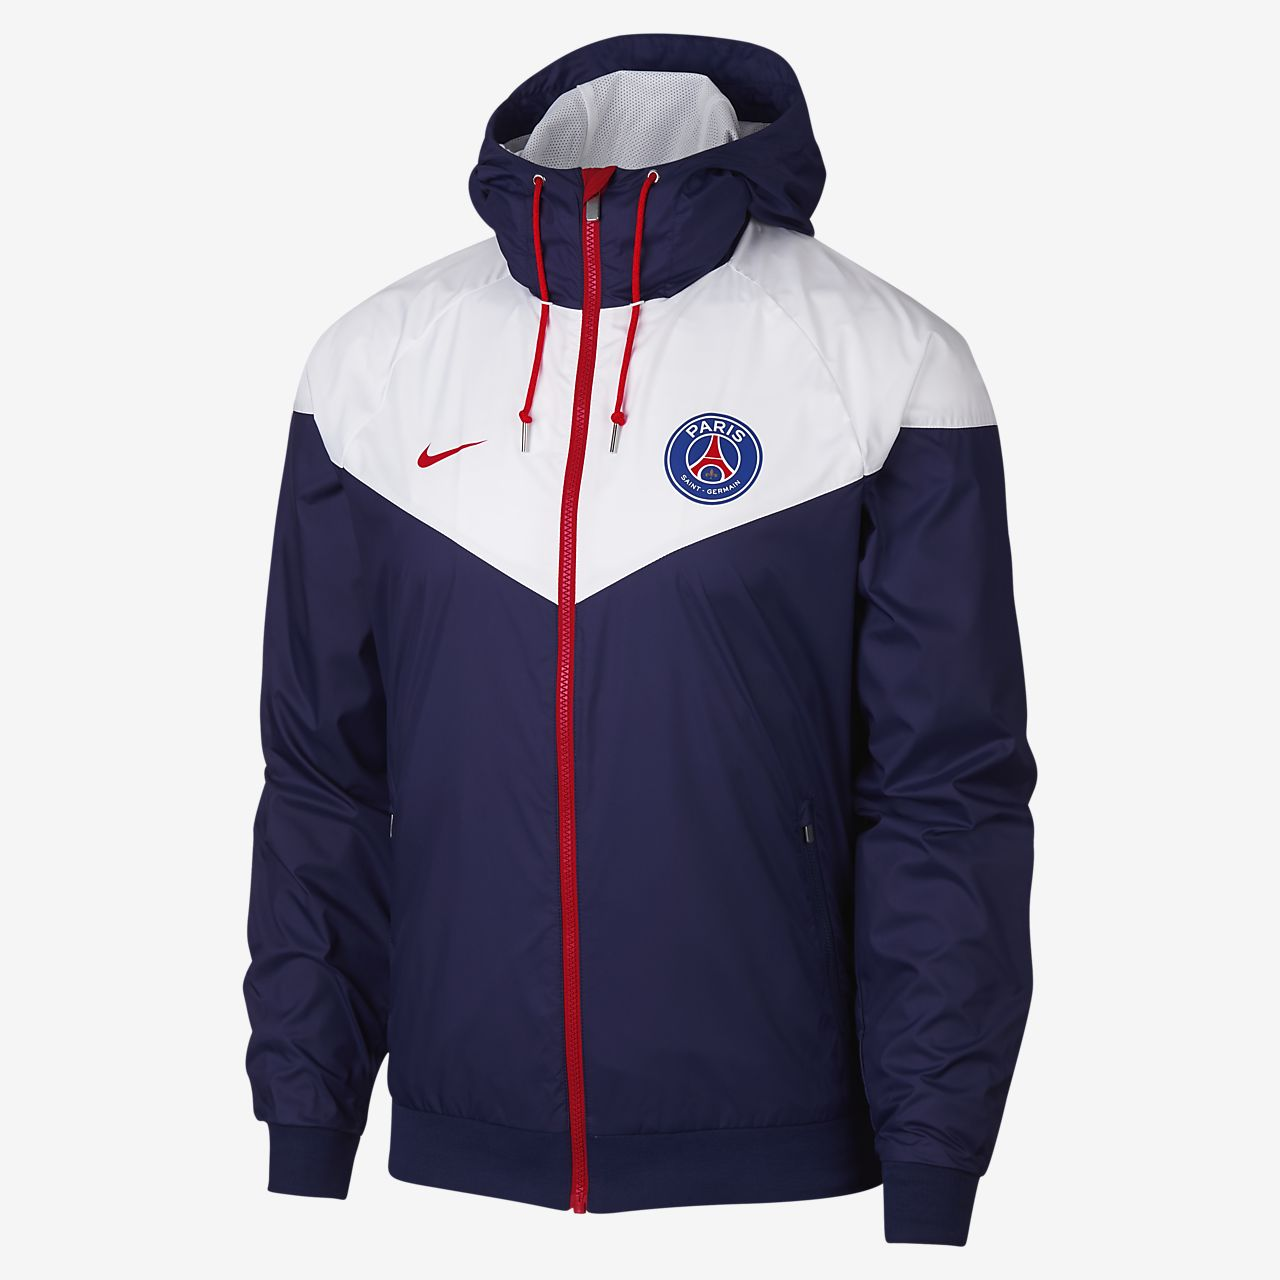 7c9dacf1f1a958 Paris Saint-Germain Windrunner Men s Jacket. Nike.com AU